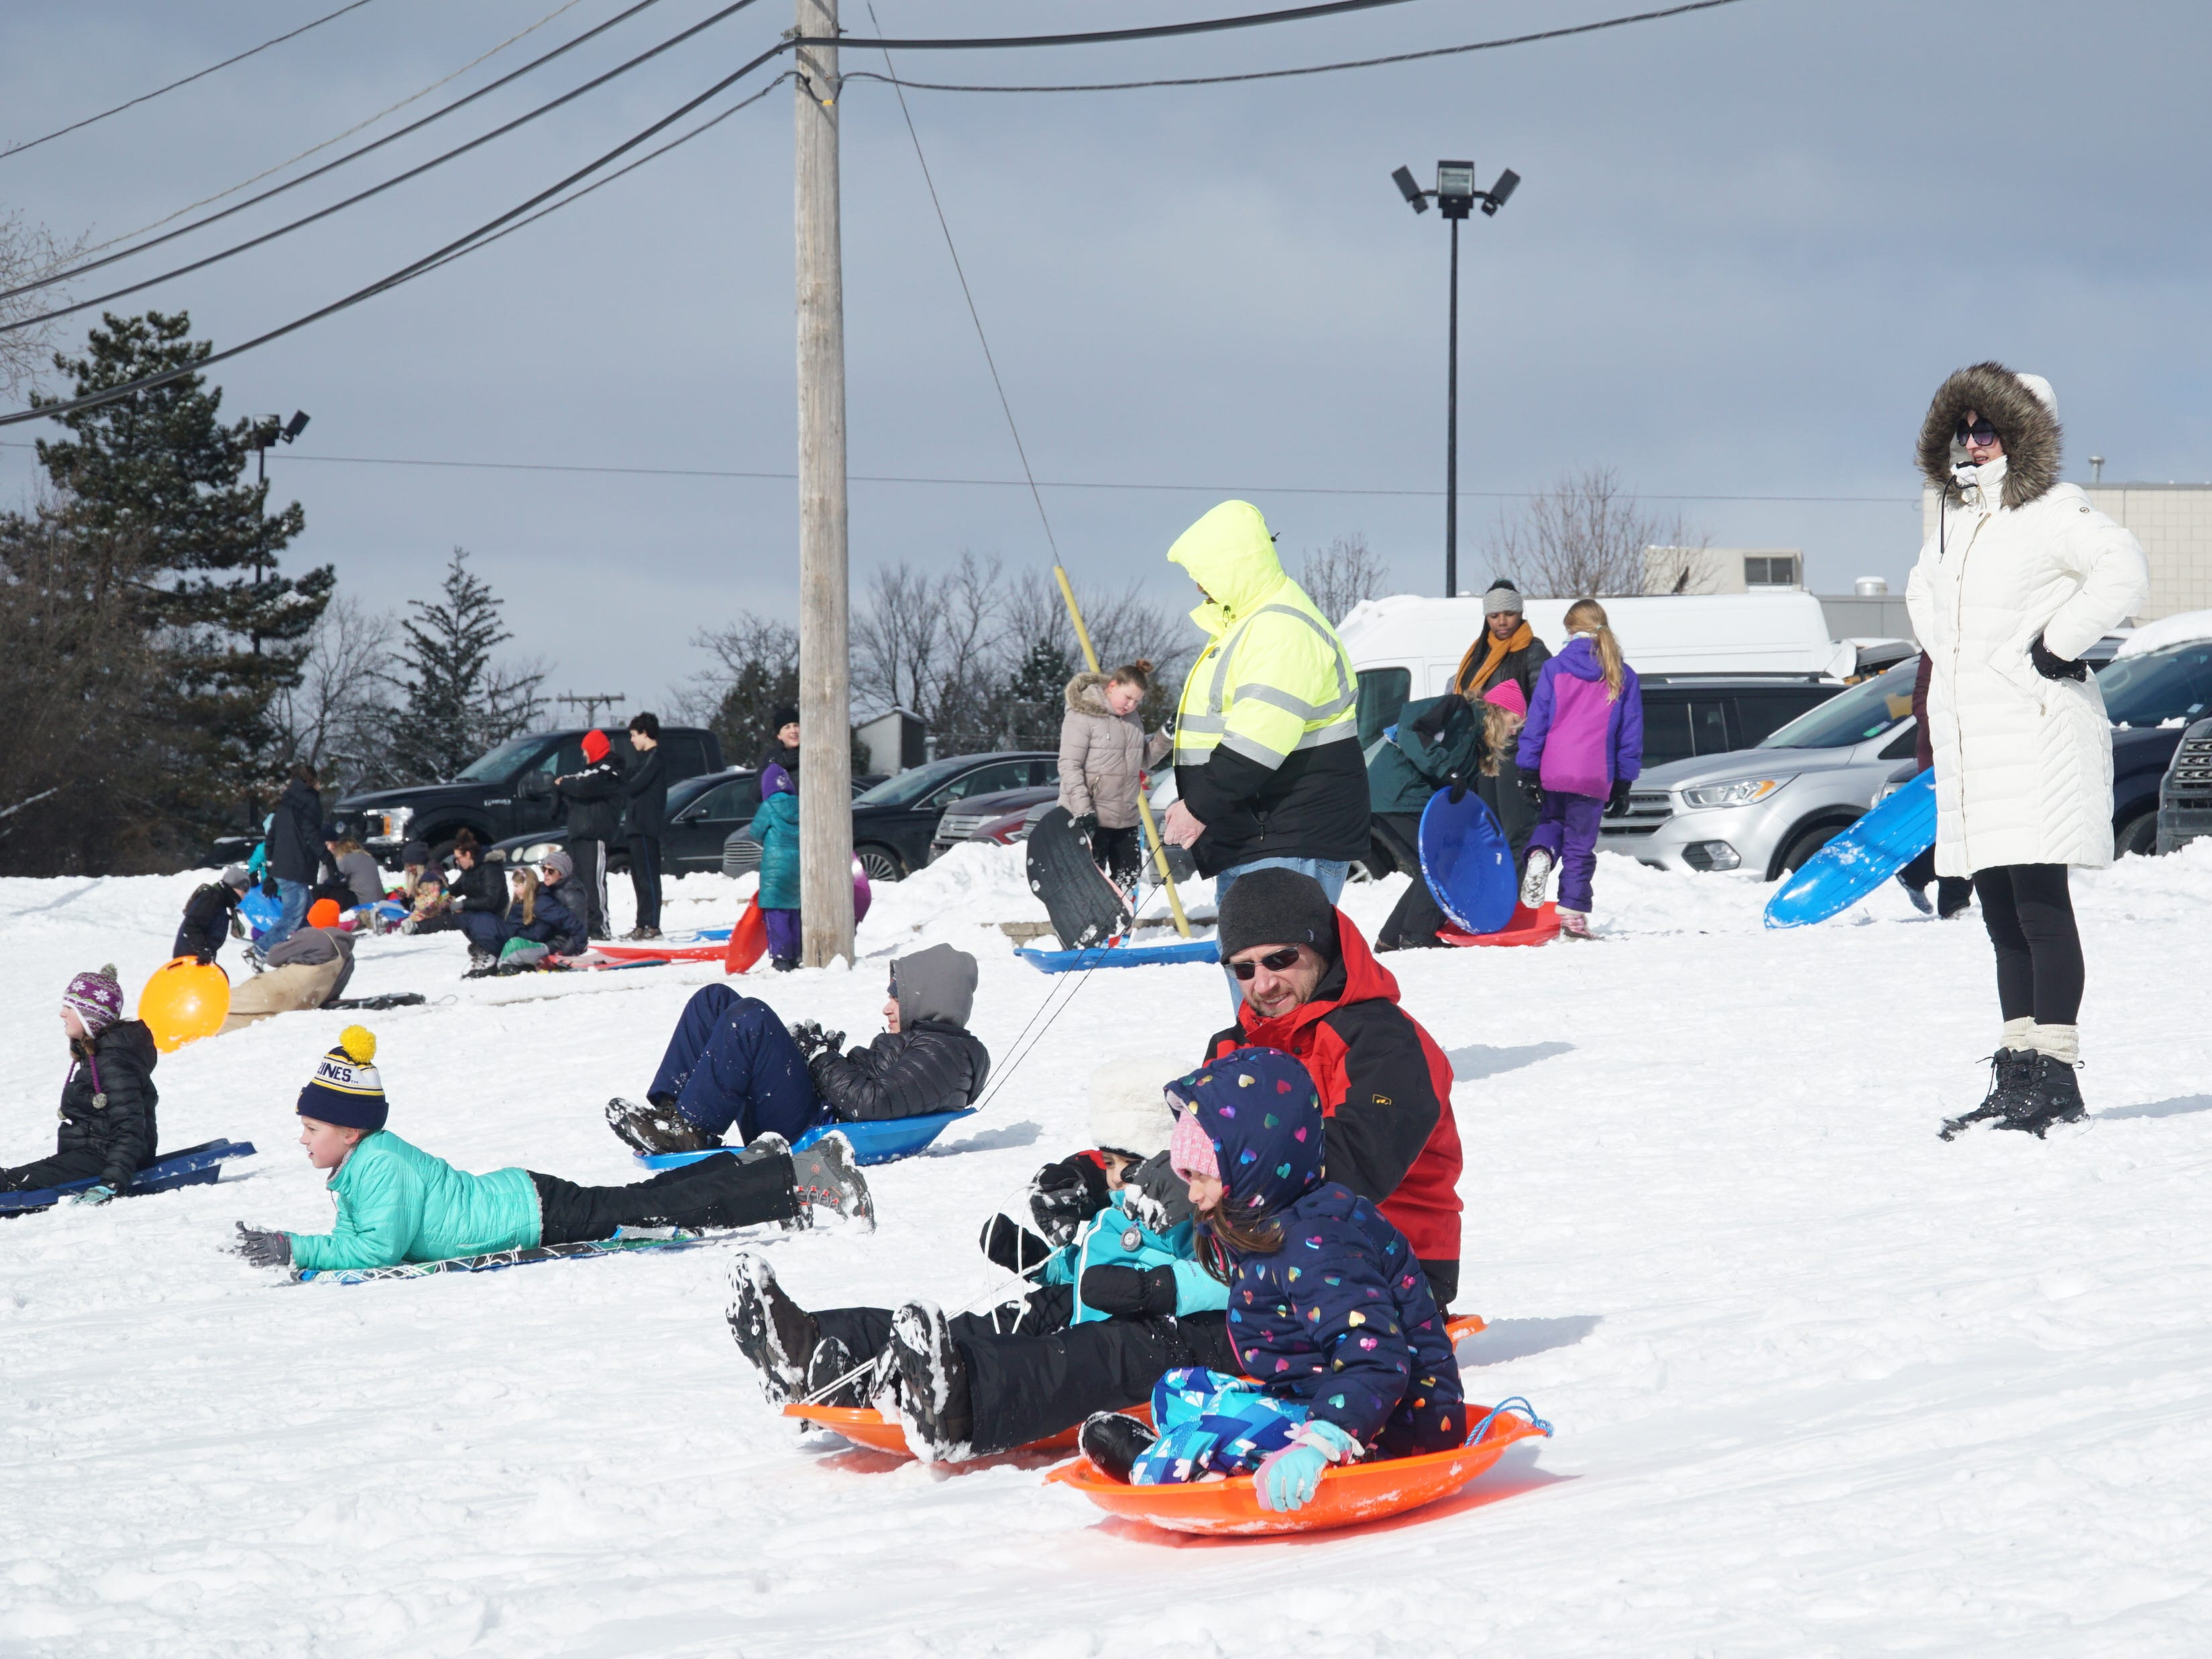 Dozens of snow-lovers hit the incline of Farmington's Sled Hill off Shiawasee on Feb. 18. About five inches of powdery white stuff the previous day made for great sledding.